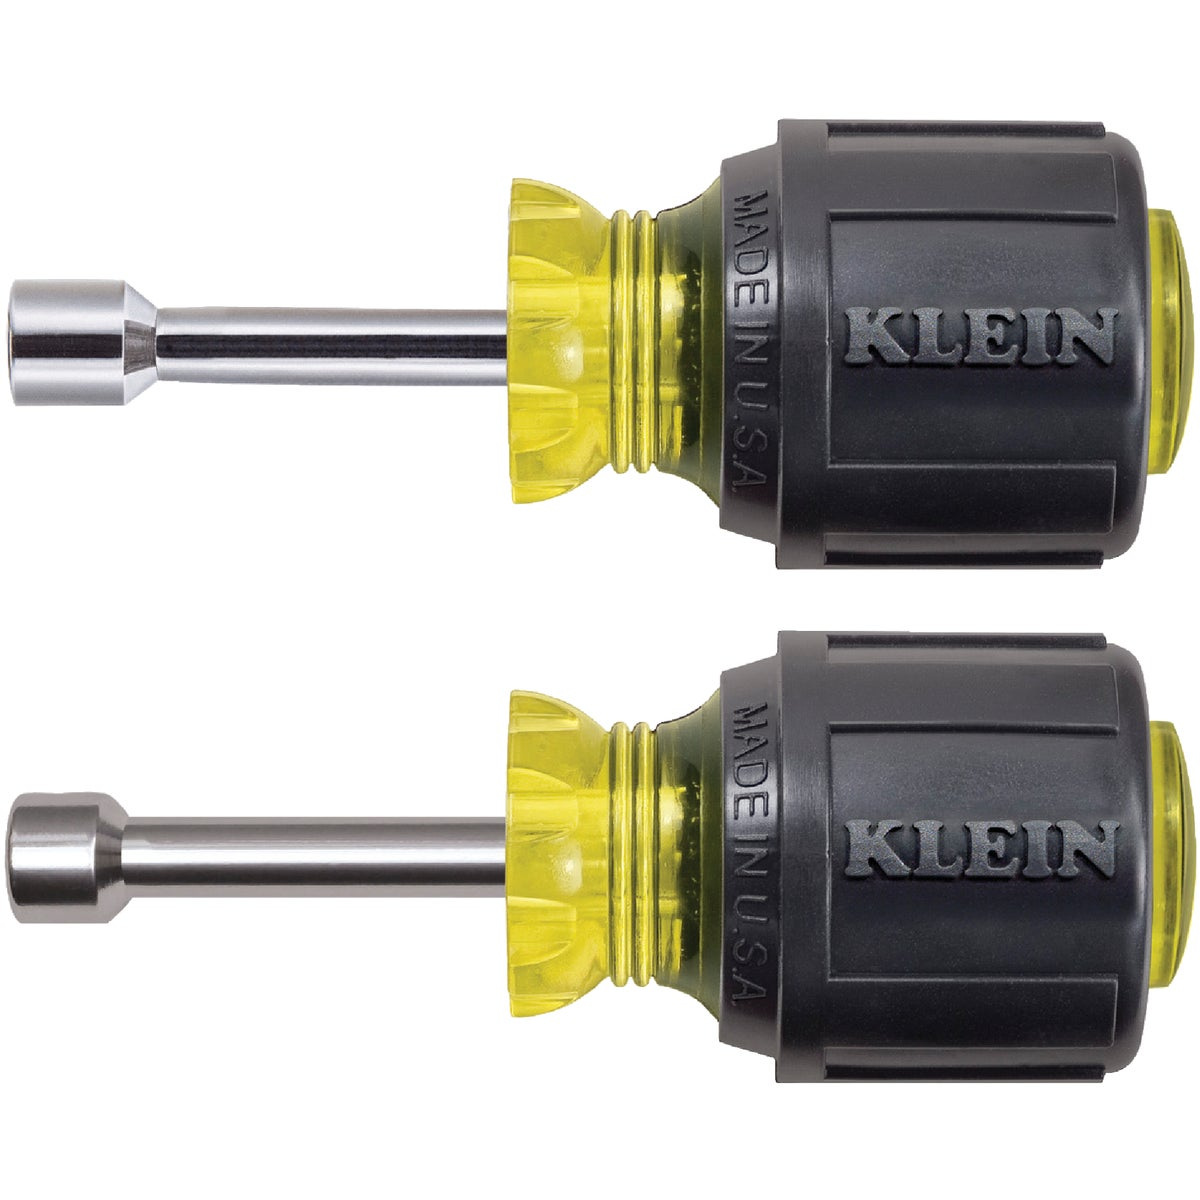 STUBBY NUT DRIVER SET - 610 by Klein Tools Inc